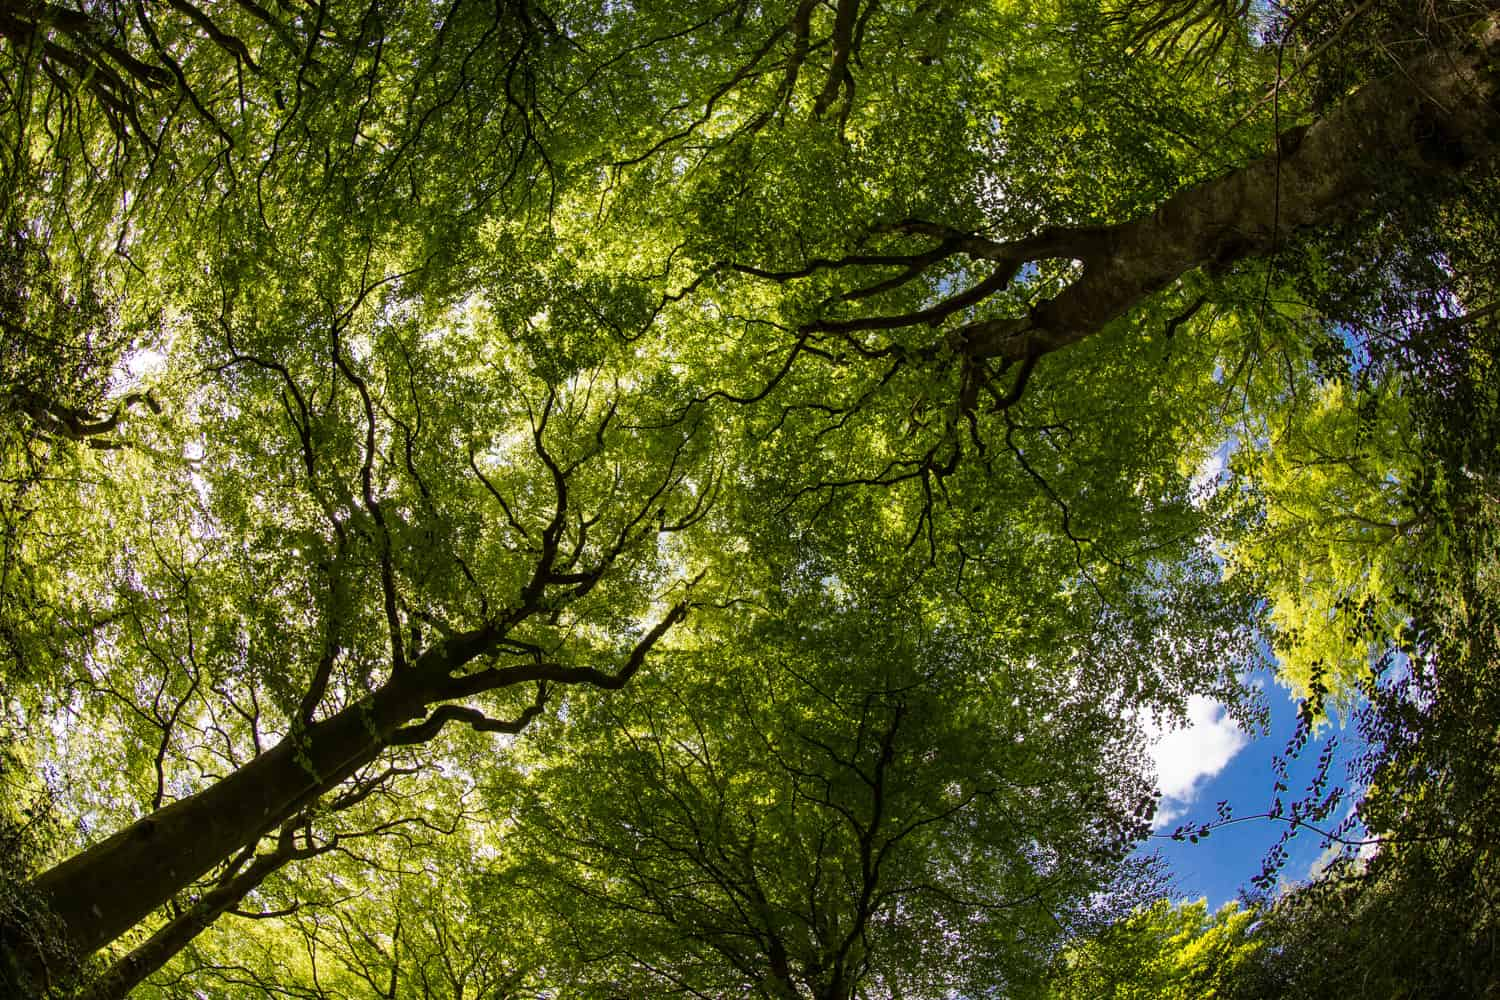 Looking up in the summer - more new photography in Hampshire